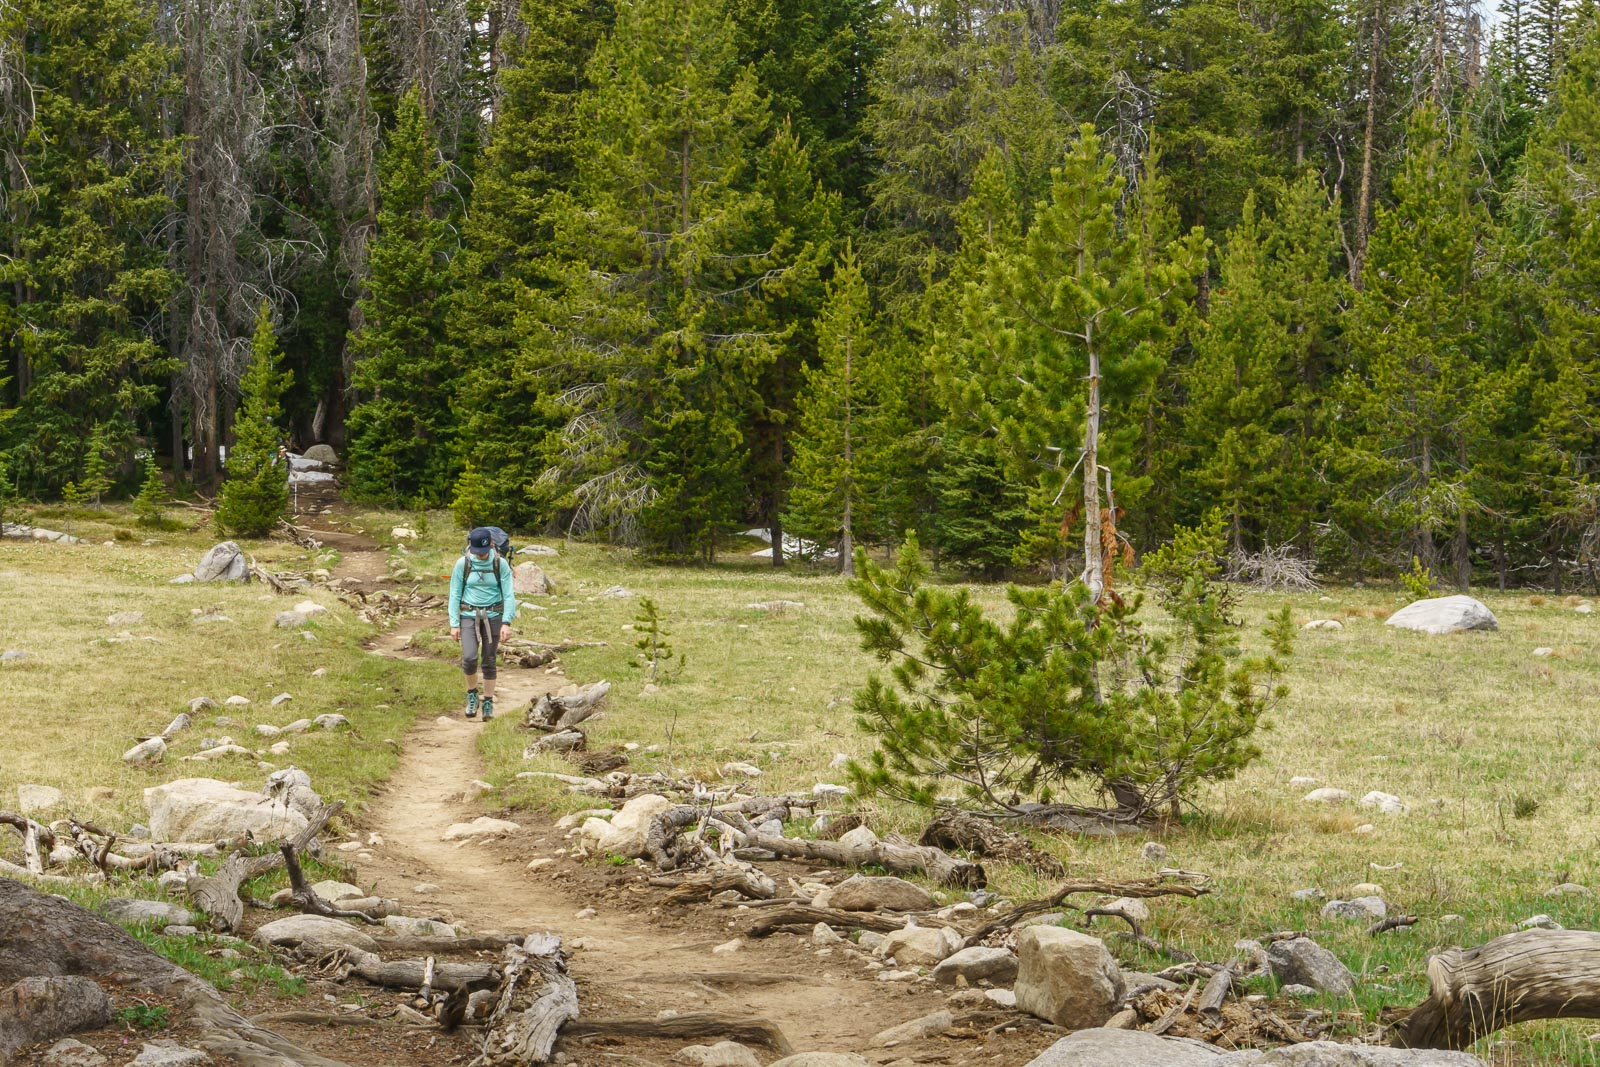 Our hike in started at 9500\' and wandered through forested flat terrain.